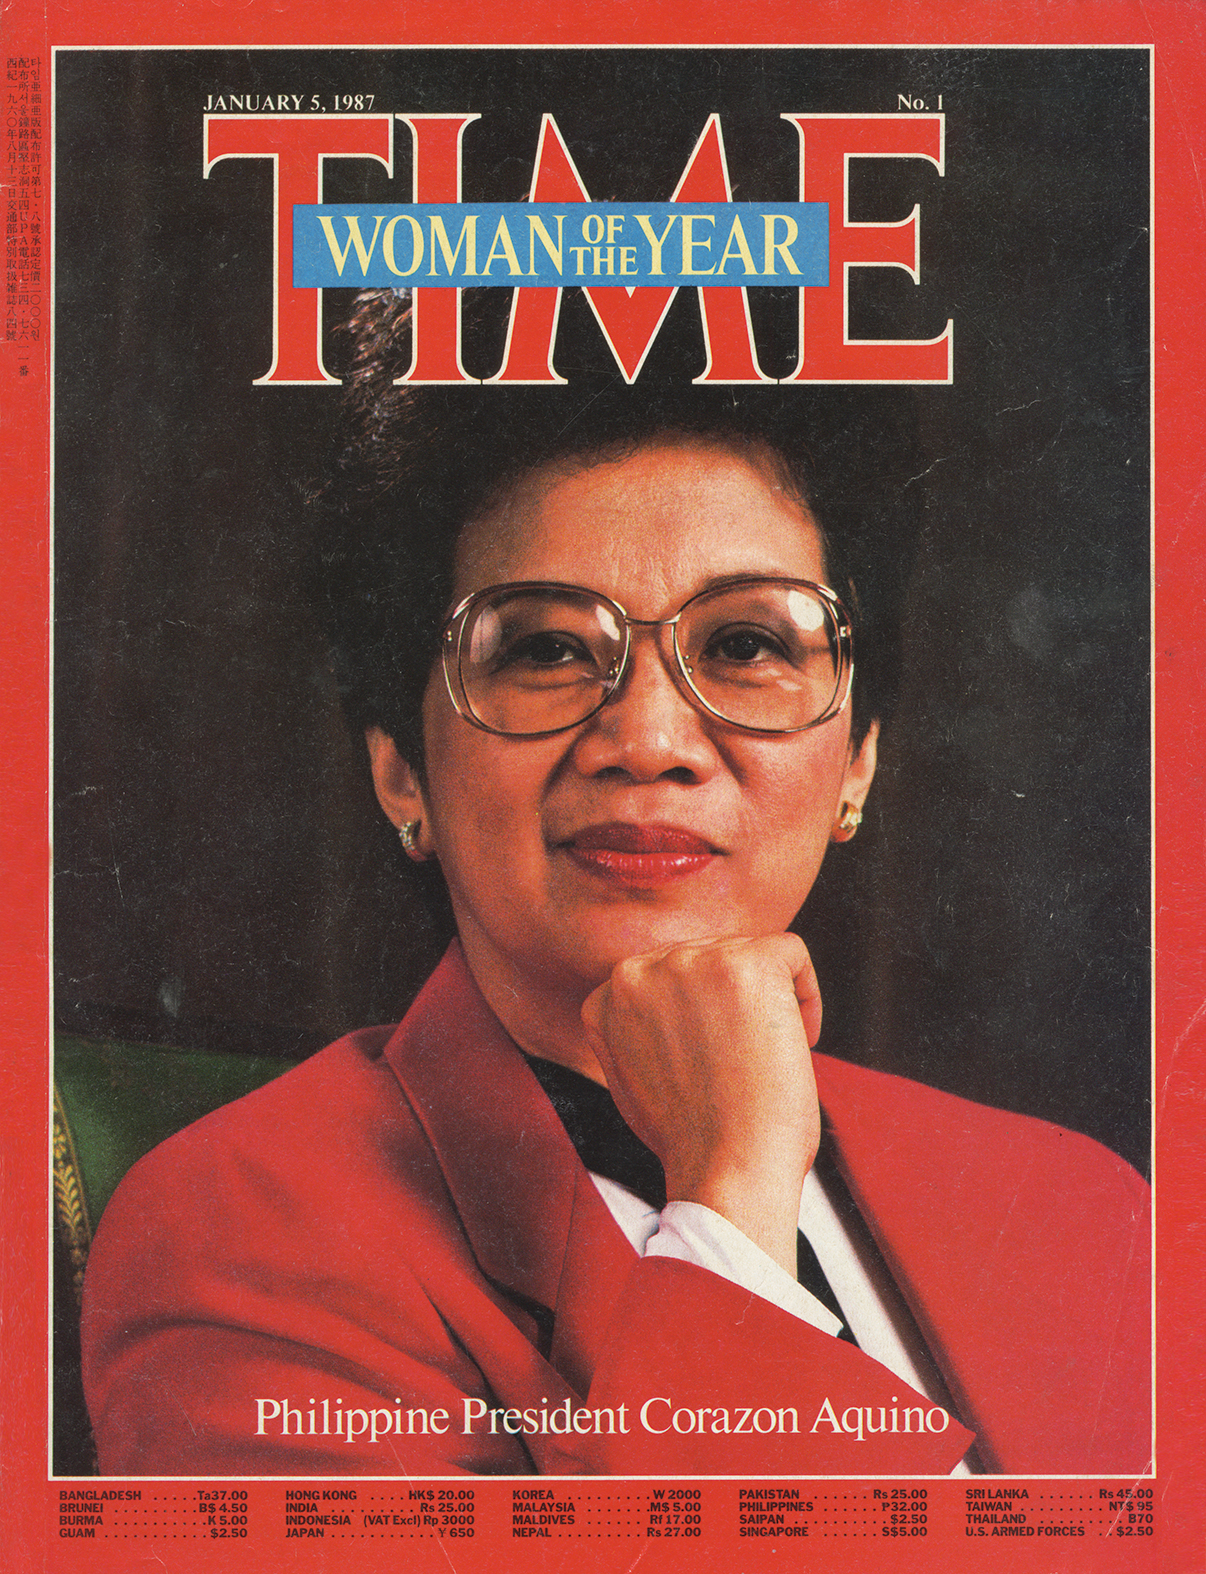 cory aquino icon of democracy Highlights after the assassination of her husband in 1983, cory aquino became at the forefront of the people's movement in the philippines which began to defy the dictator marcos through peaceful rallies and civil disobedience actions.